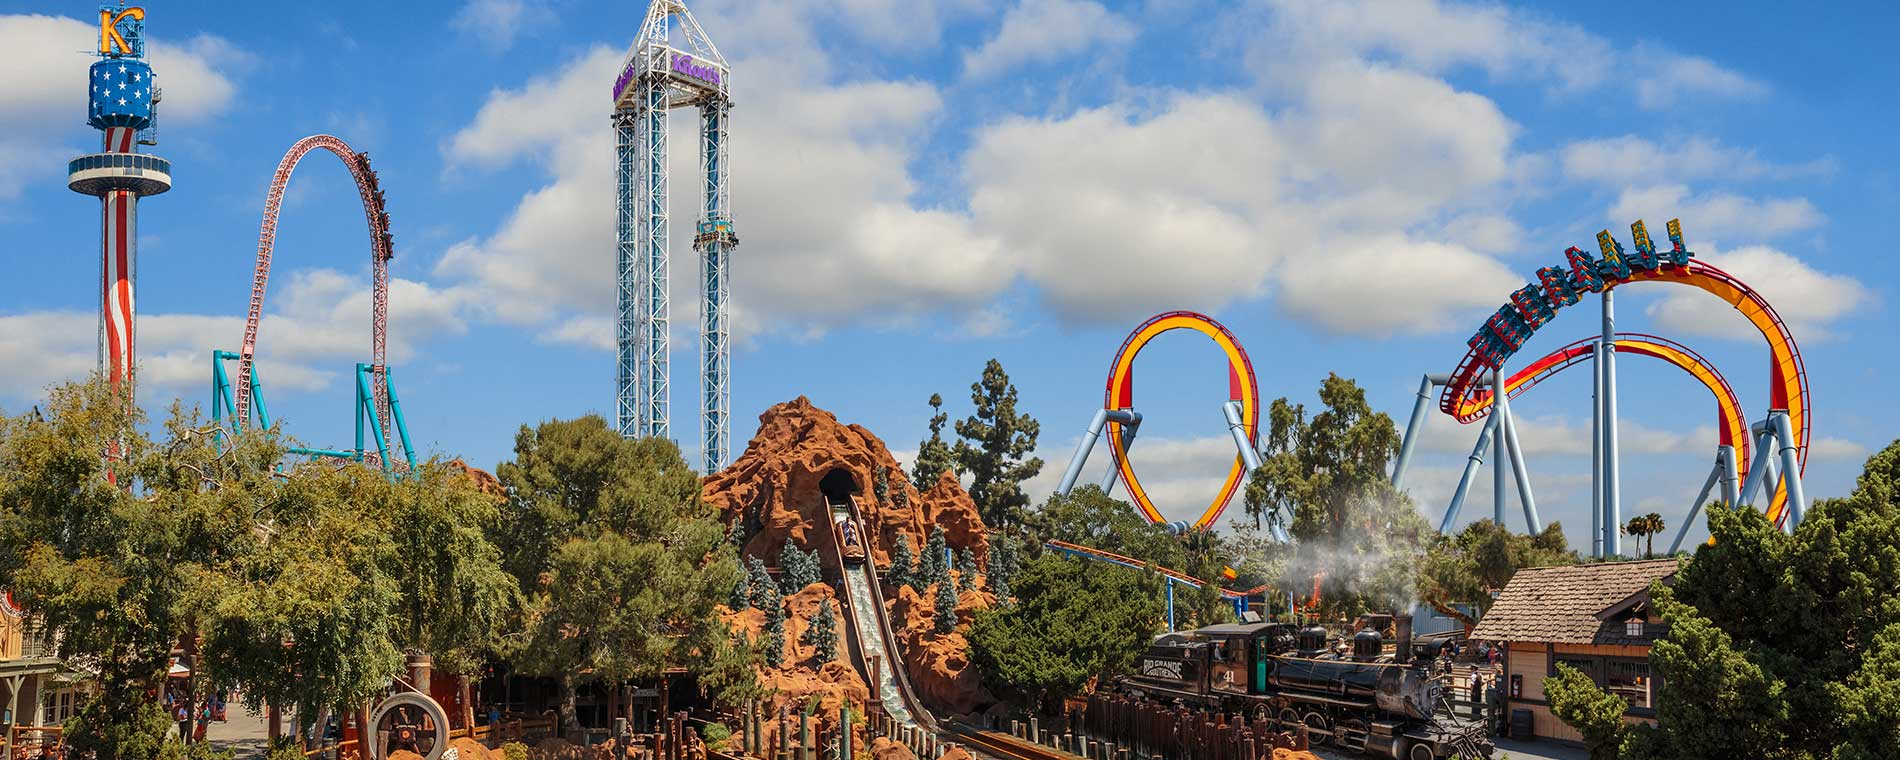 Come Experience California's 1st Theme Park!